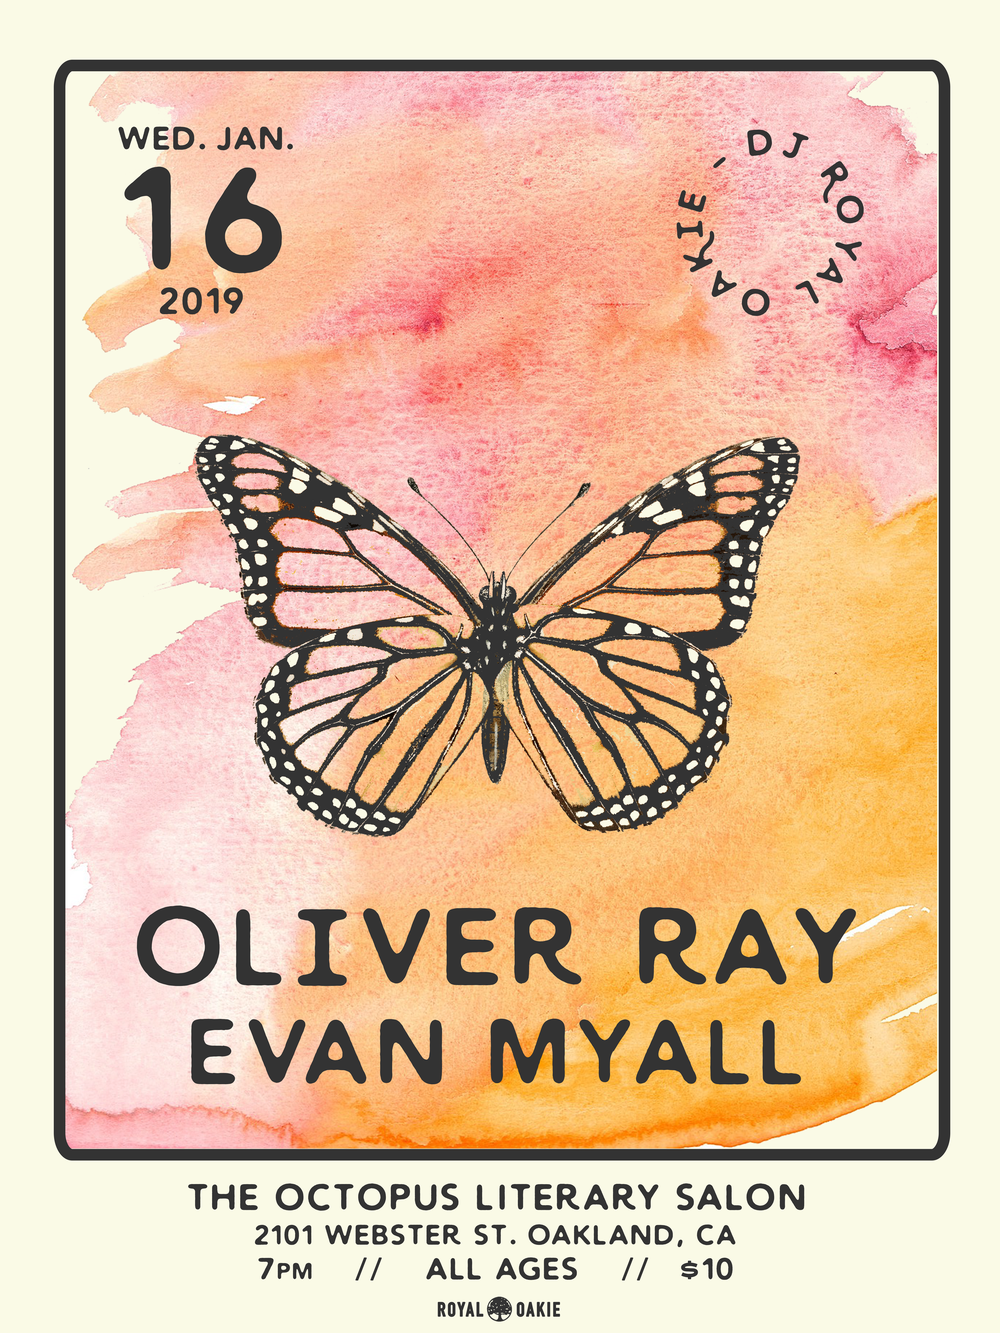 OliverRay-EvanMyall-ShowPoster-1-16-19-for-WEB.png